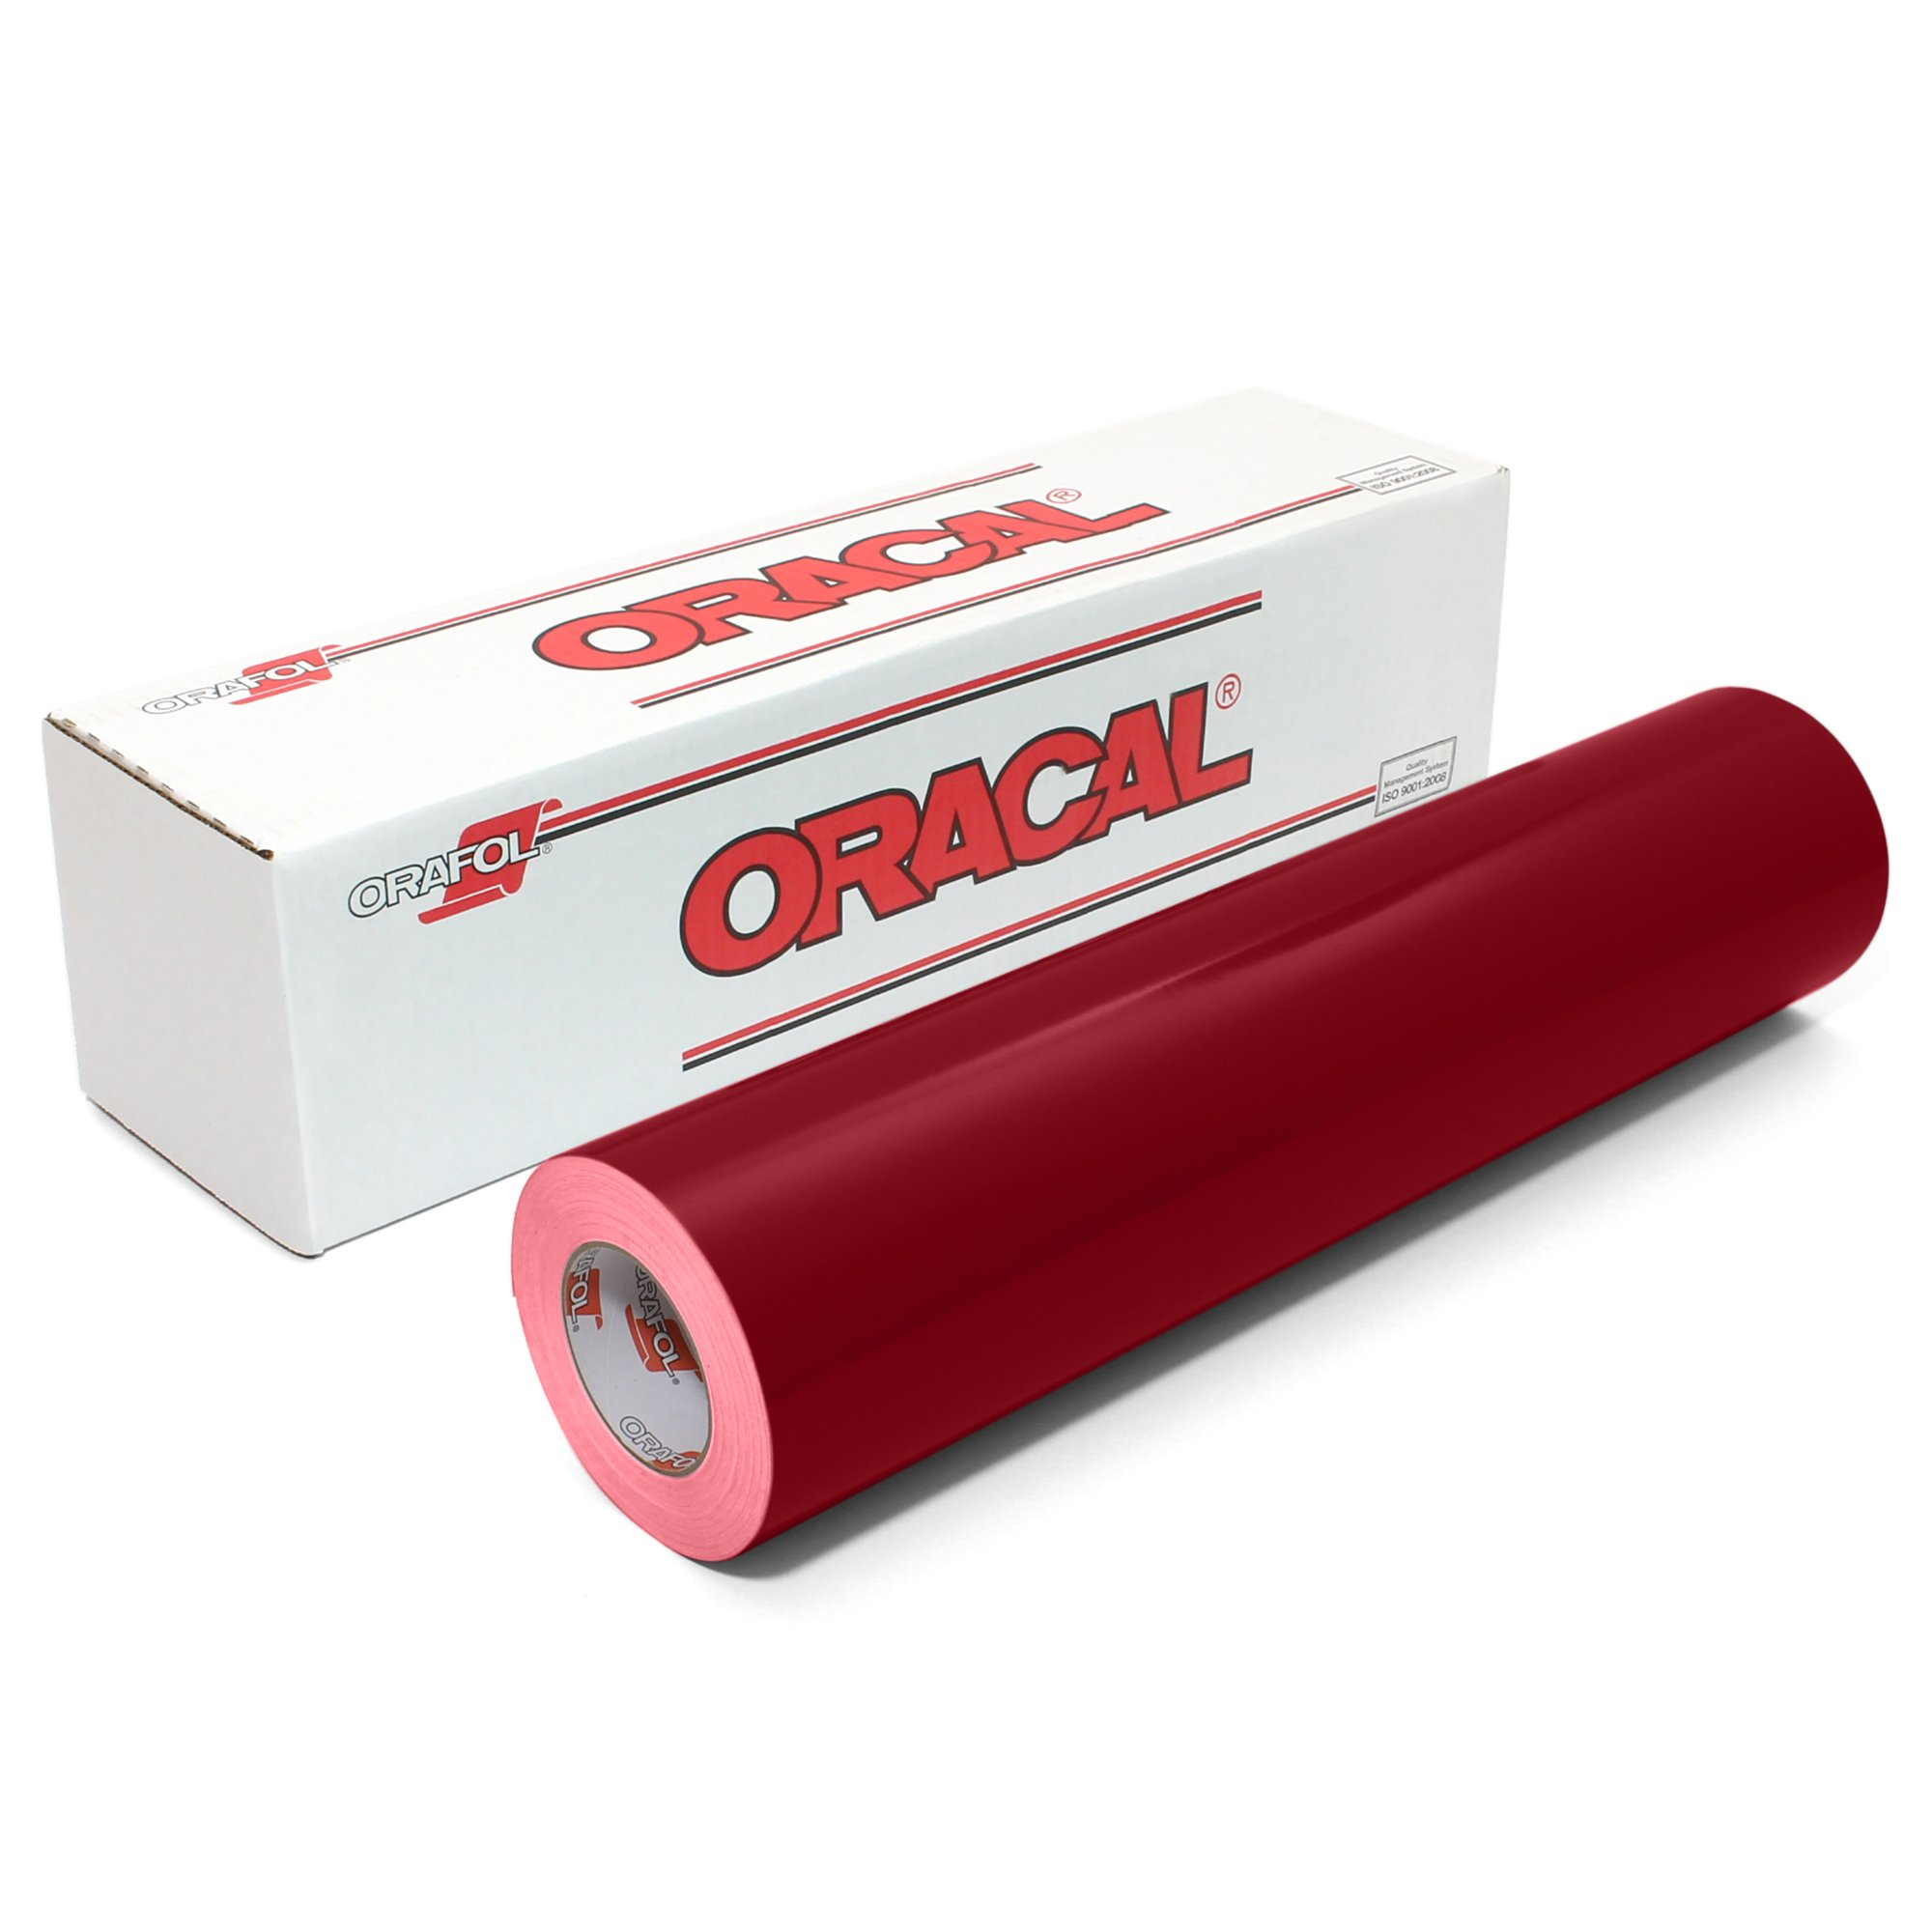 "Oracal 651 Glossy 12"" x 6 Foot Vinyl Rolls - 61 Color"